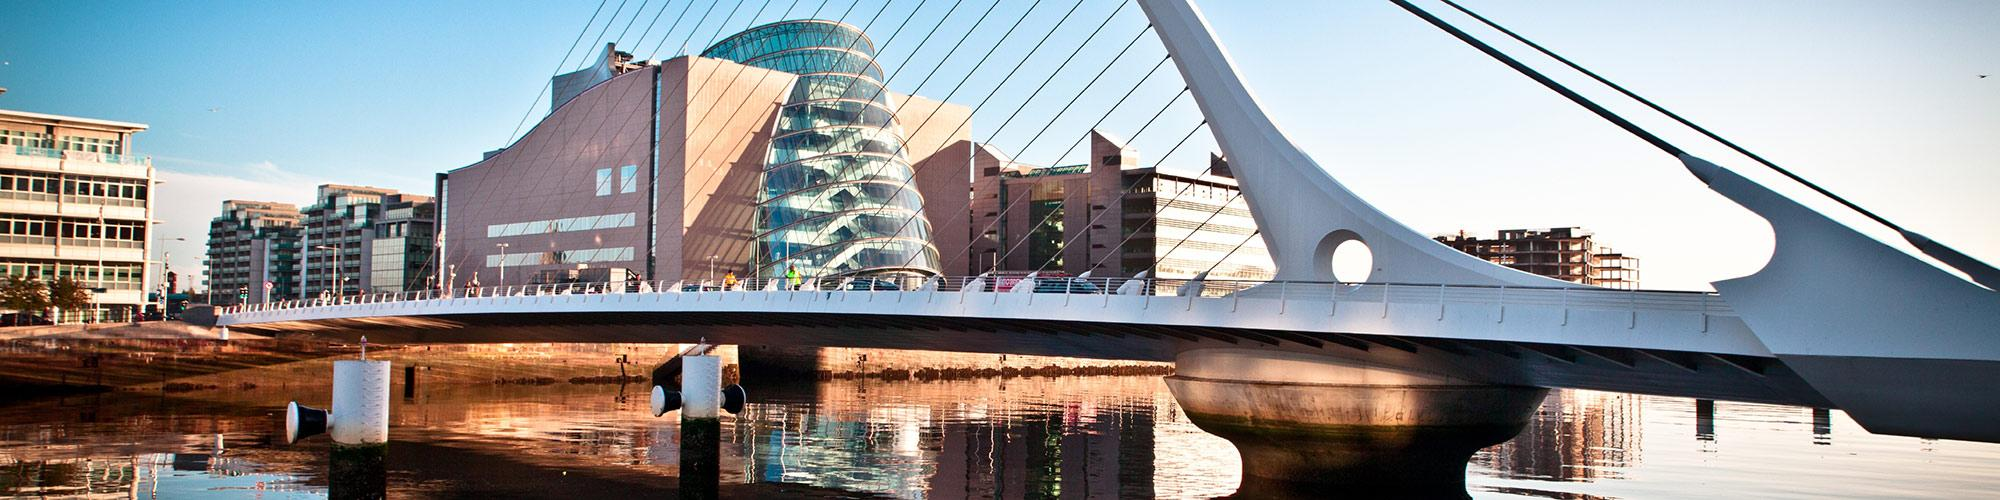 Image of the Samuel Beckett Bridge over the River Liffey in Dublin Ireland with the Convention Centre in the background.